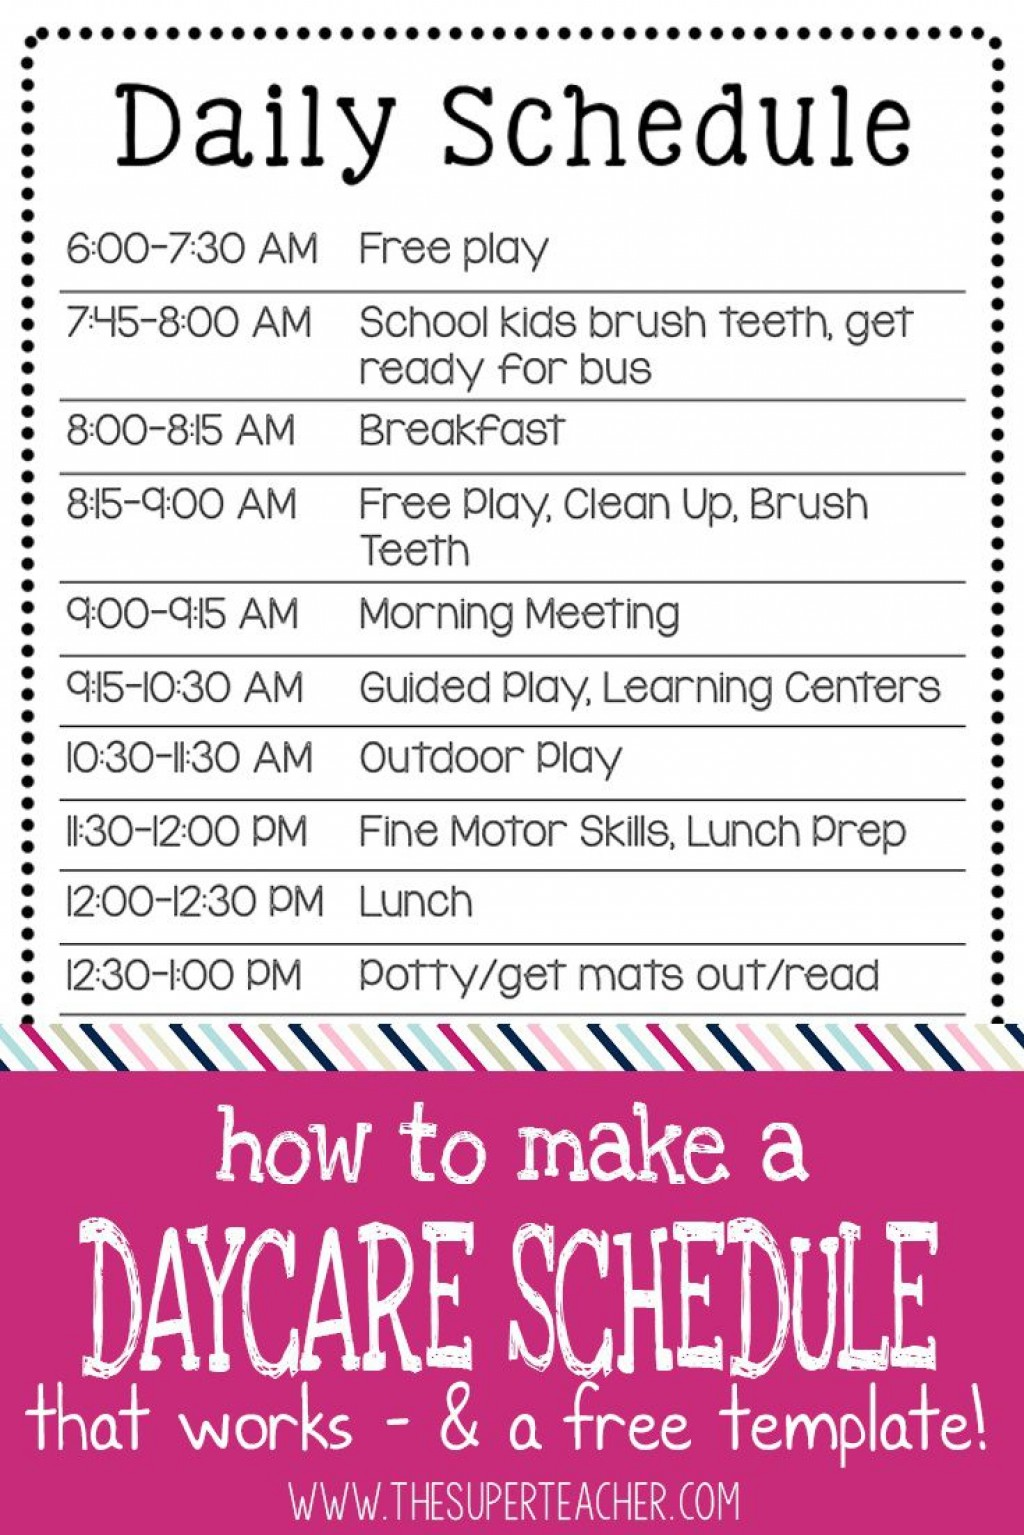 003 Remarkable Preschool Daily Schedule Template High Def  Planner Routine PlanLarge